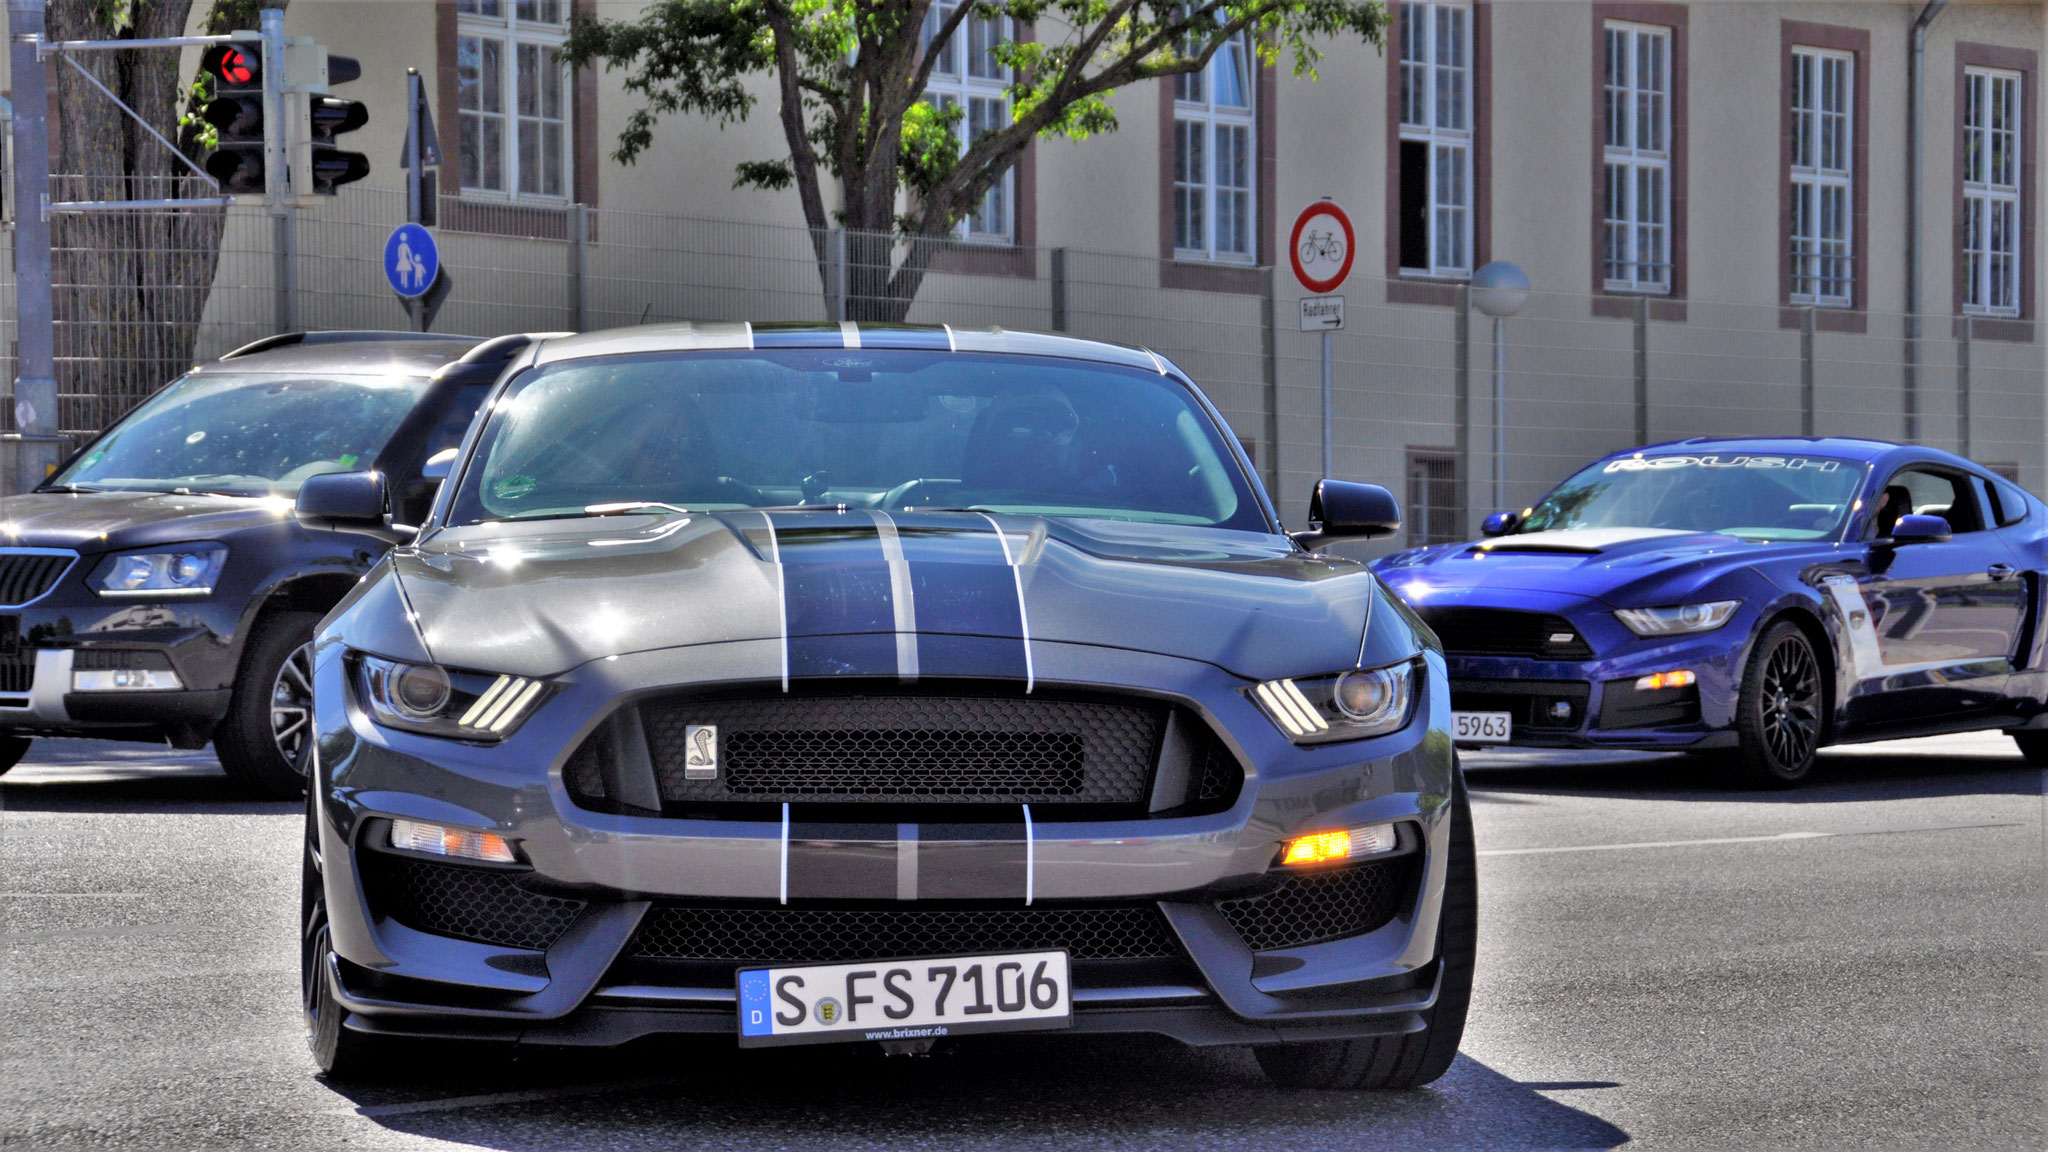 Ford Mustang Shelby GT - S-FS-7106